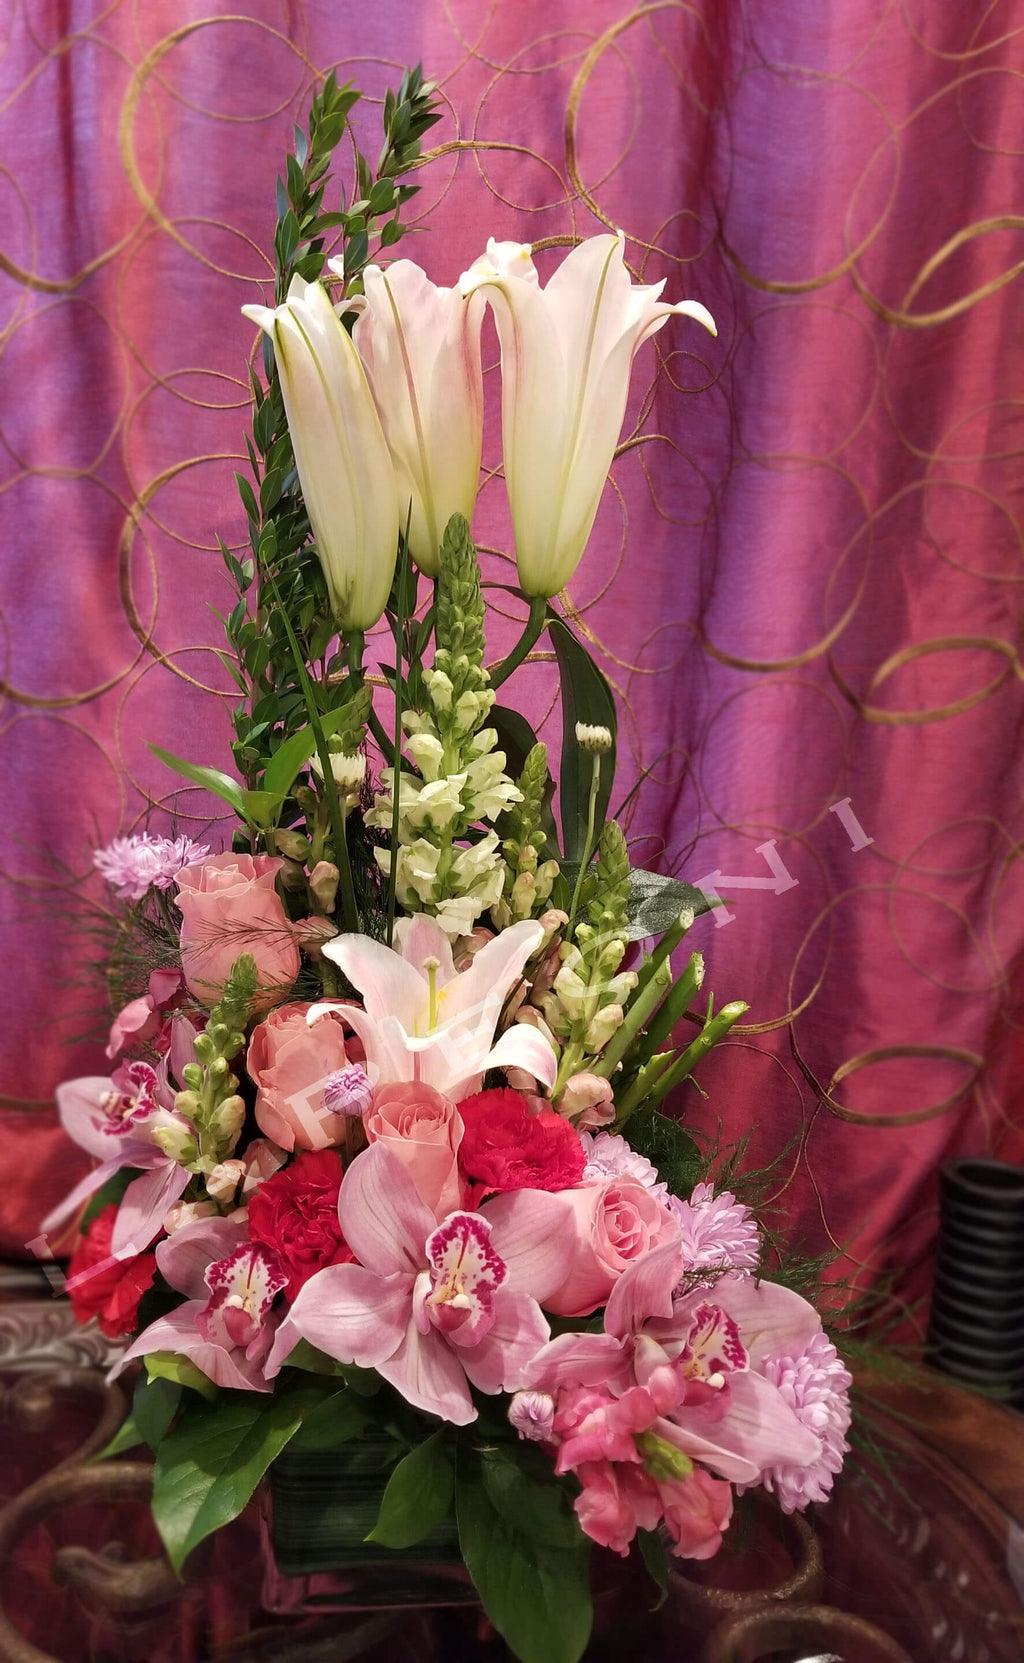 Birthday Surprise - flowers delivery-Roses, lilies, orchids, carnation. Lapeoni Flowers and Events